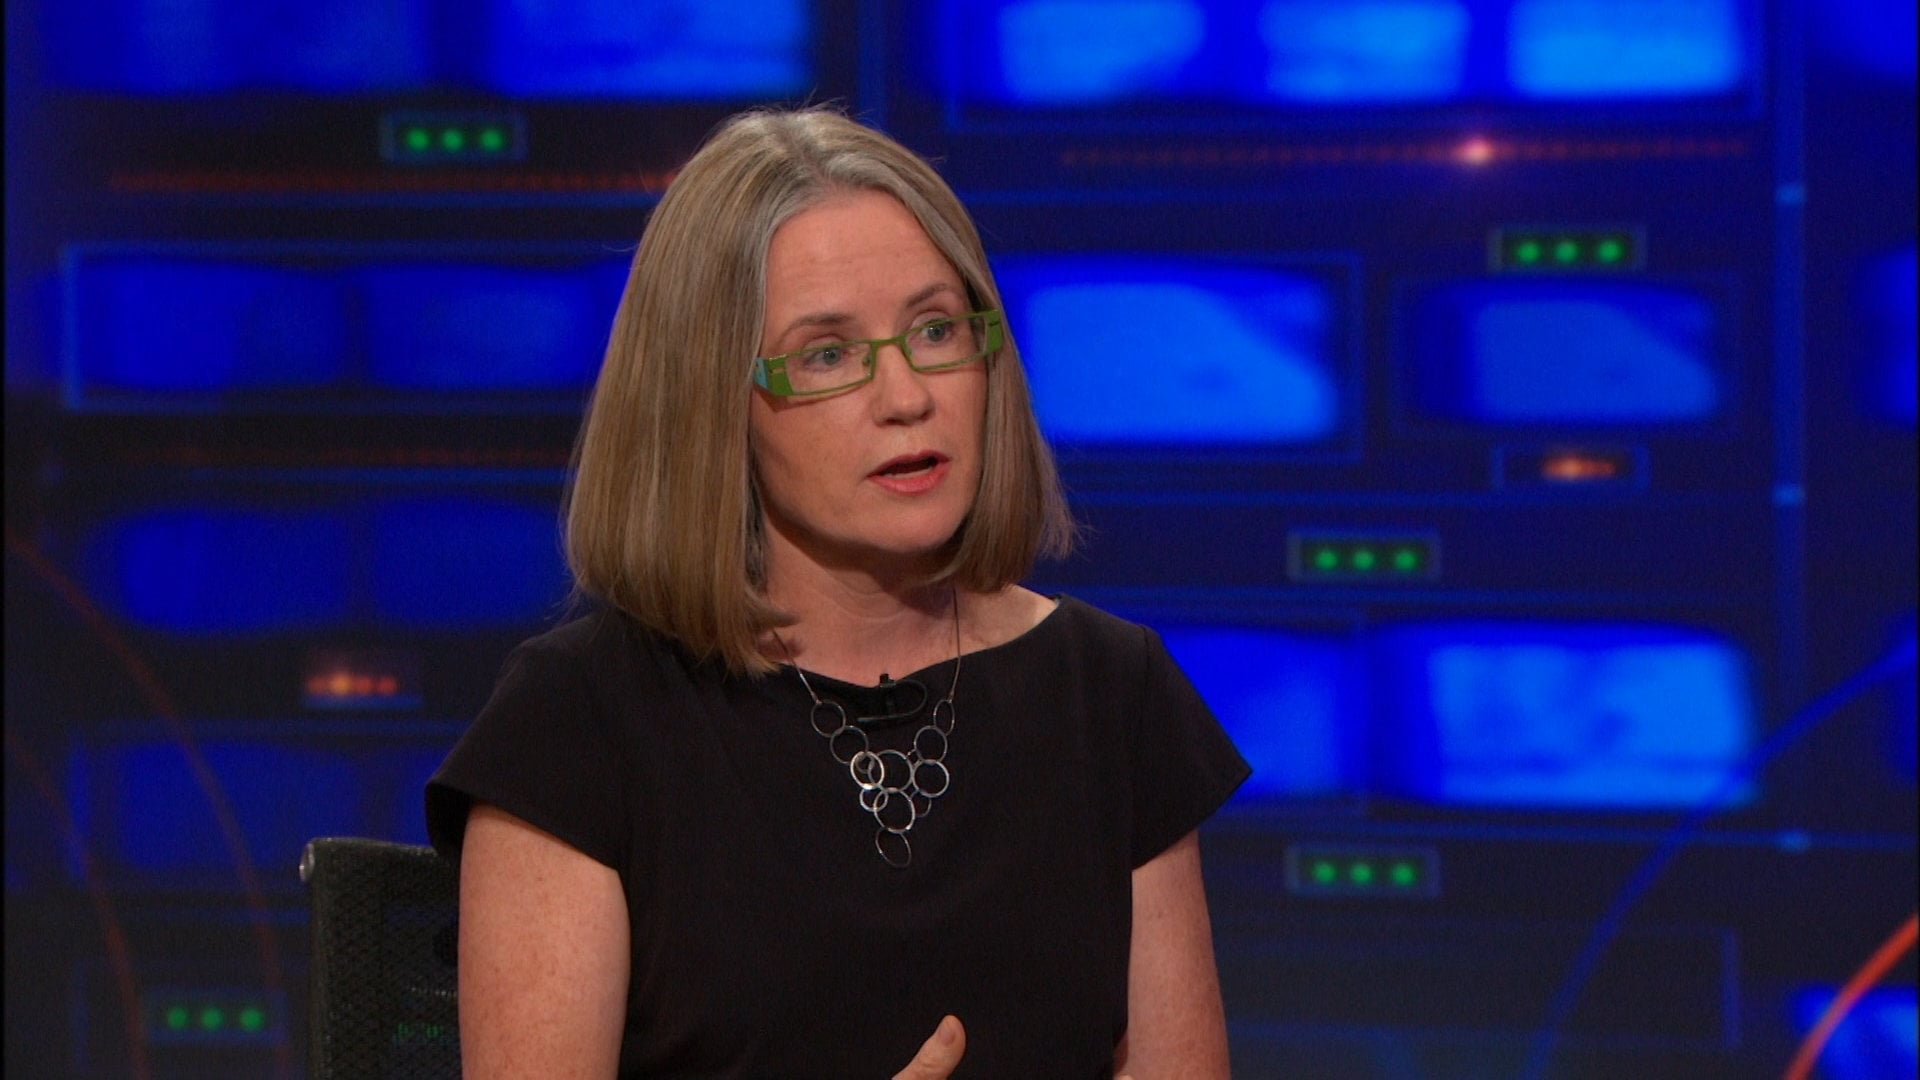 The Daily Show with Trevor Noah - Season 19 Episode 140 : Helen Thorpe